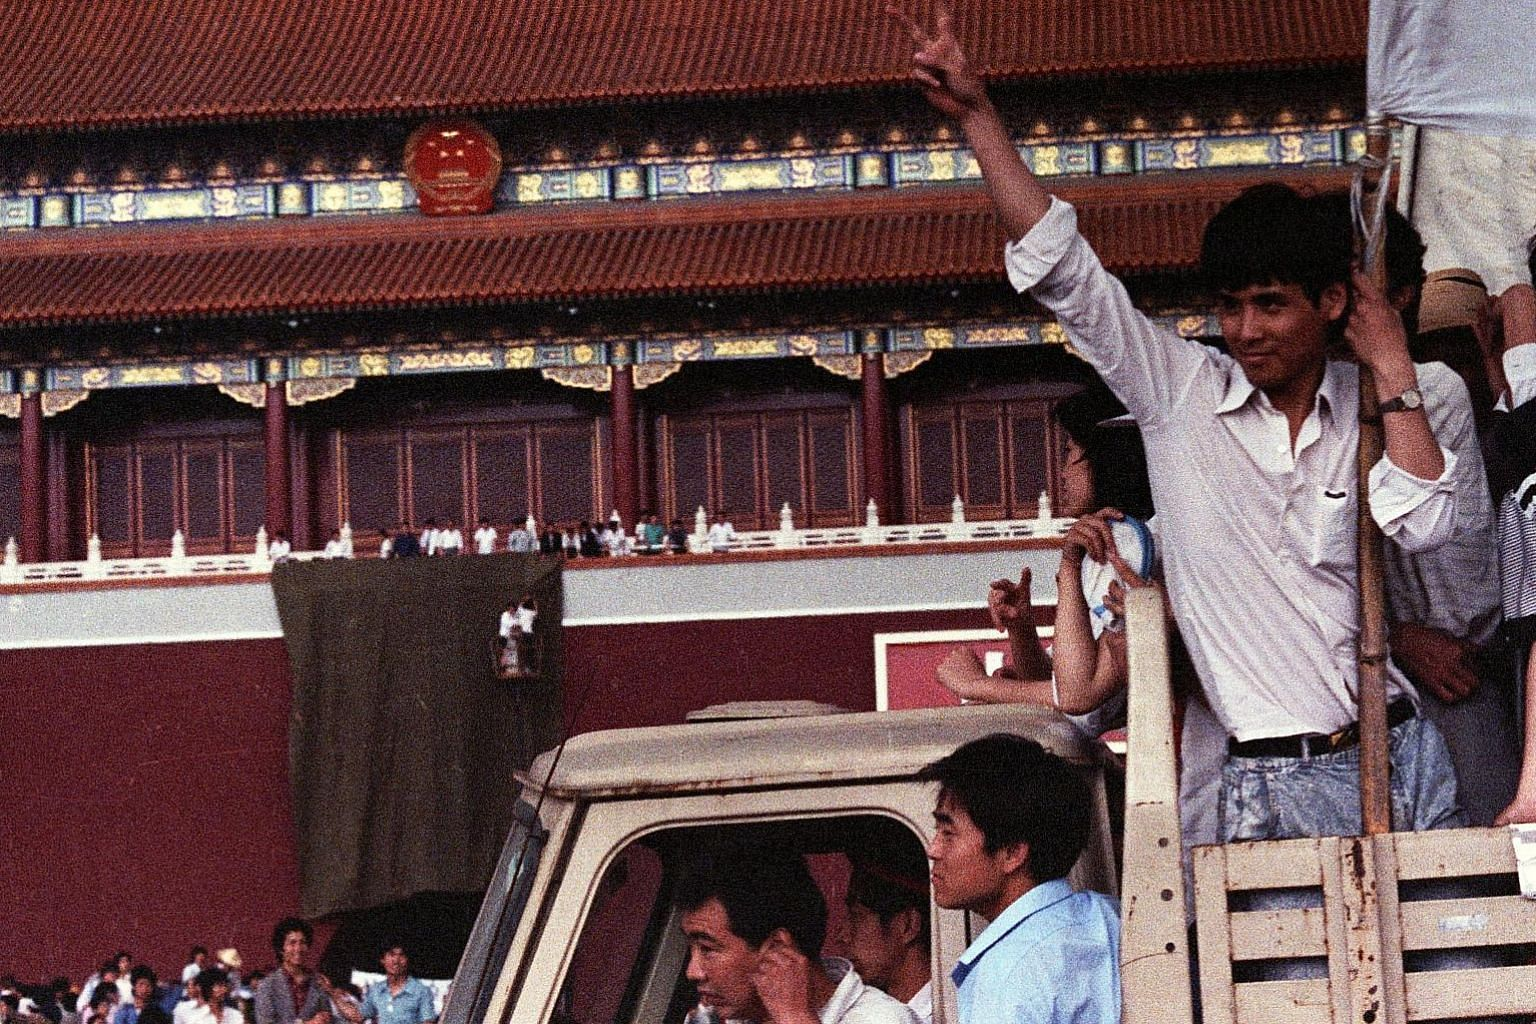 Left: A demonstrator flashing the victory sign as workmen used a drape to cover a huge portrait of chairman Mao Zedong at Tiananmen Square in 1989. Above: An armoured personnel carrier crushing one of the tents set up at Tiananmen Square by pro-democ